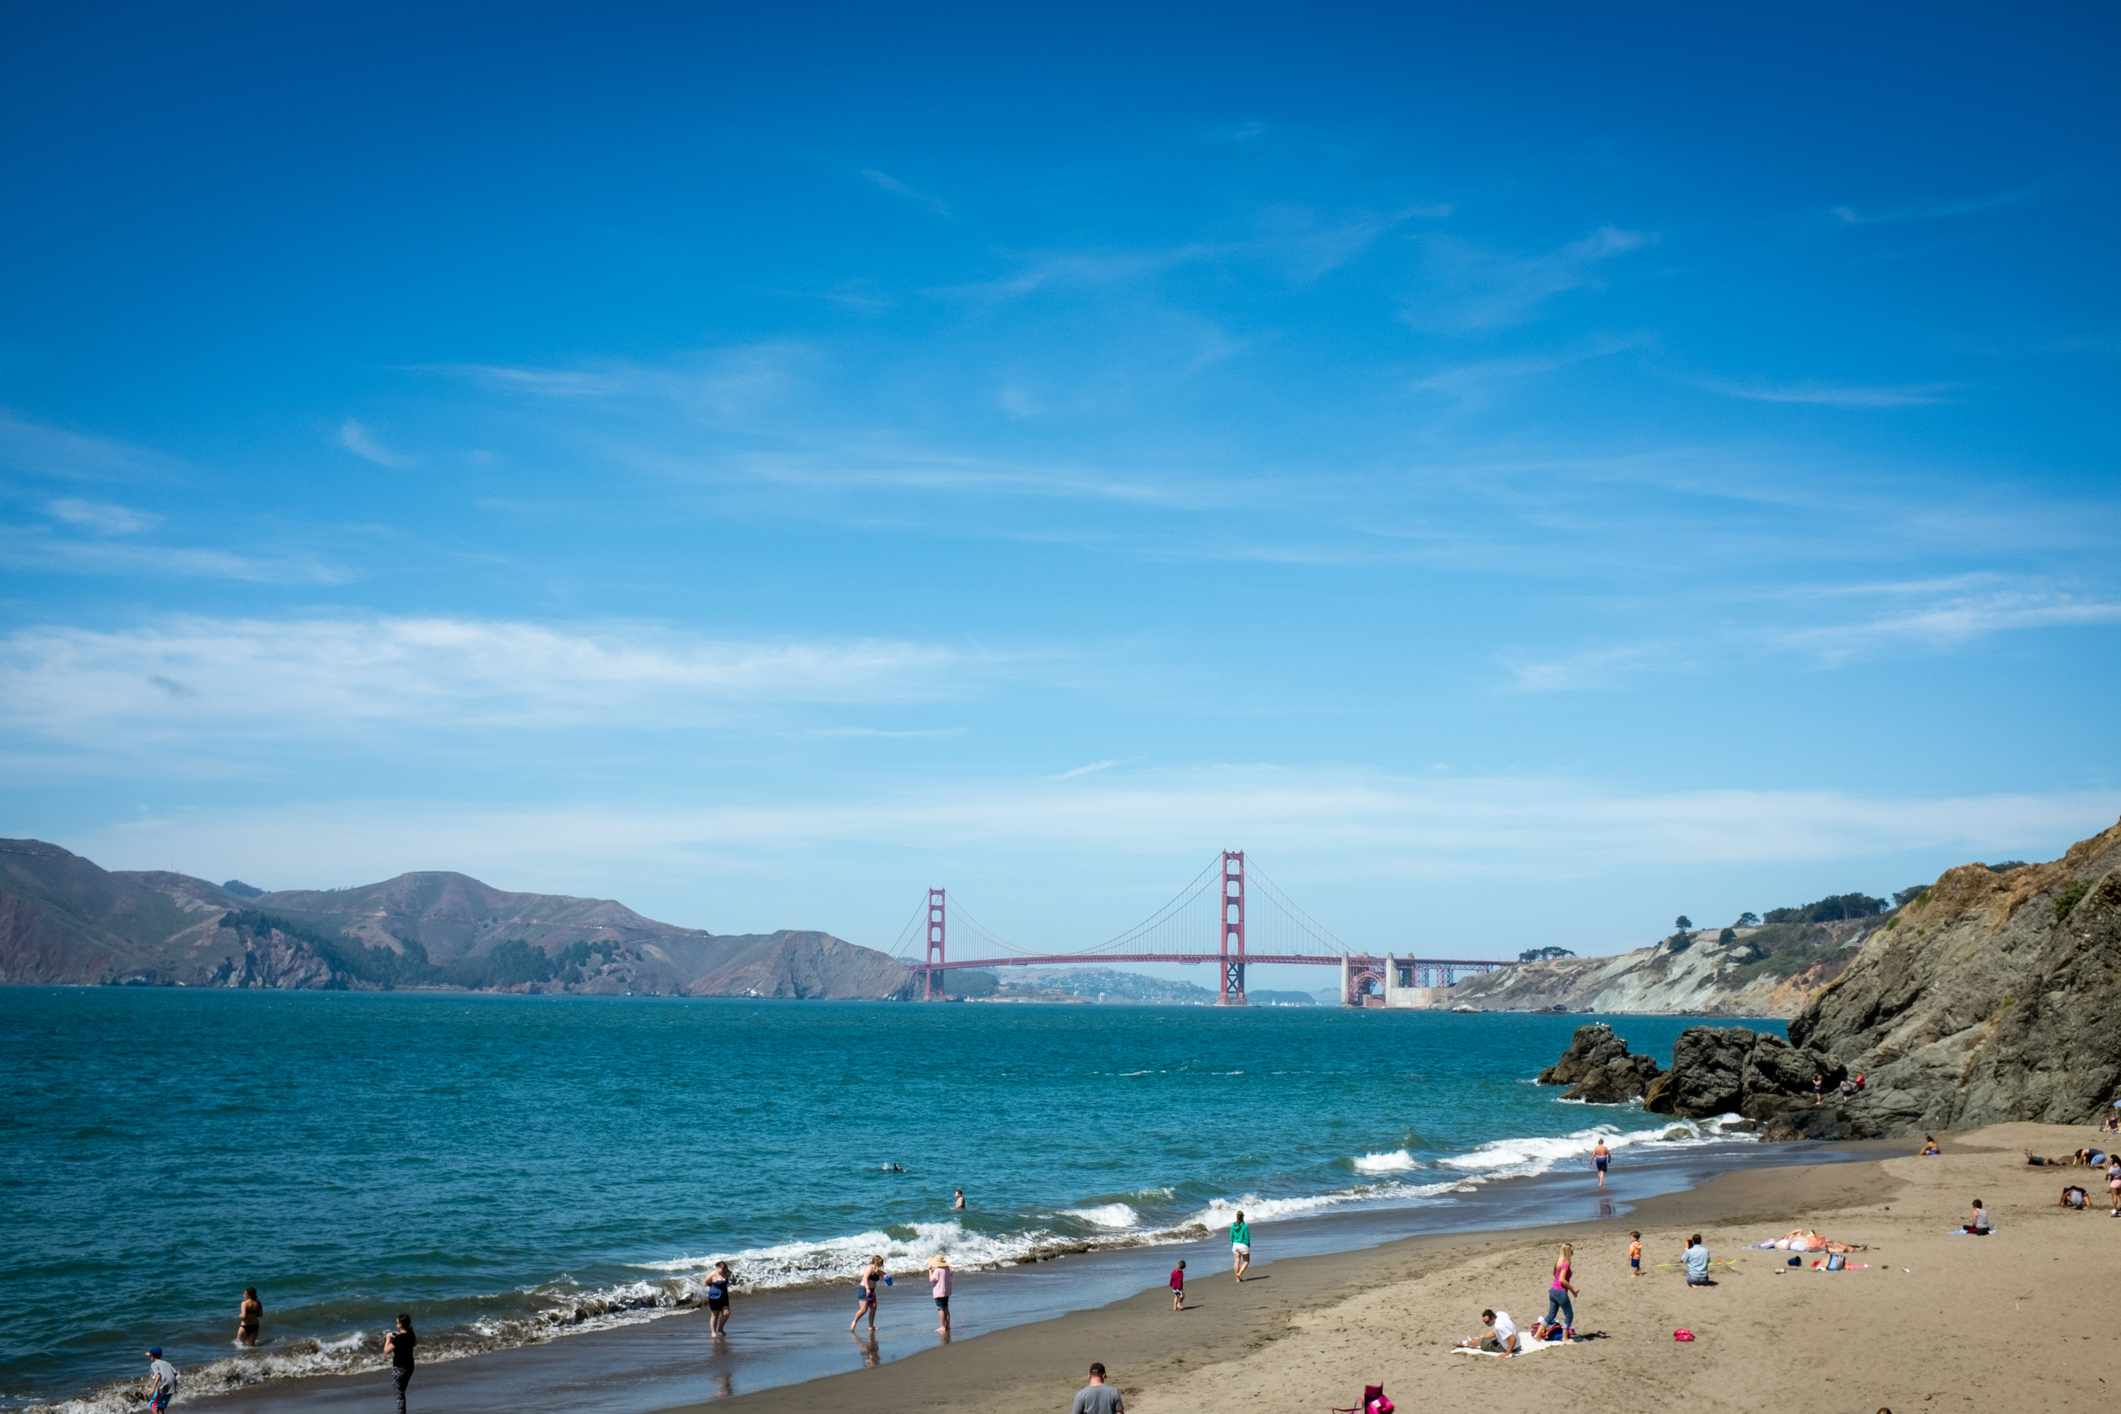 The Golden Gate Bridge from China Beach in San Francisco